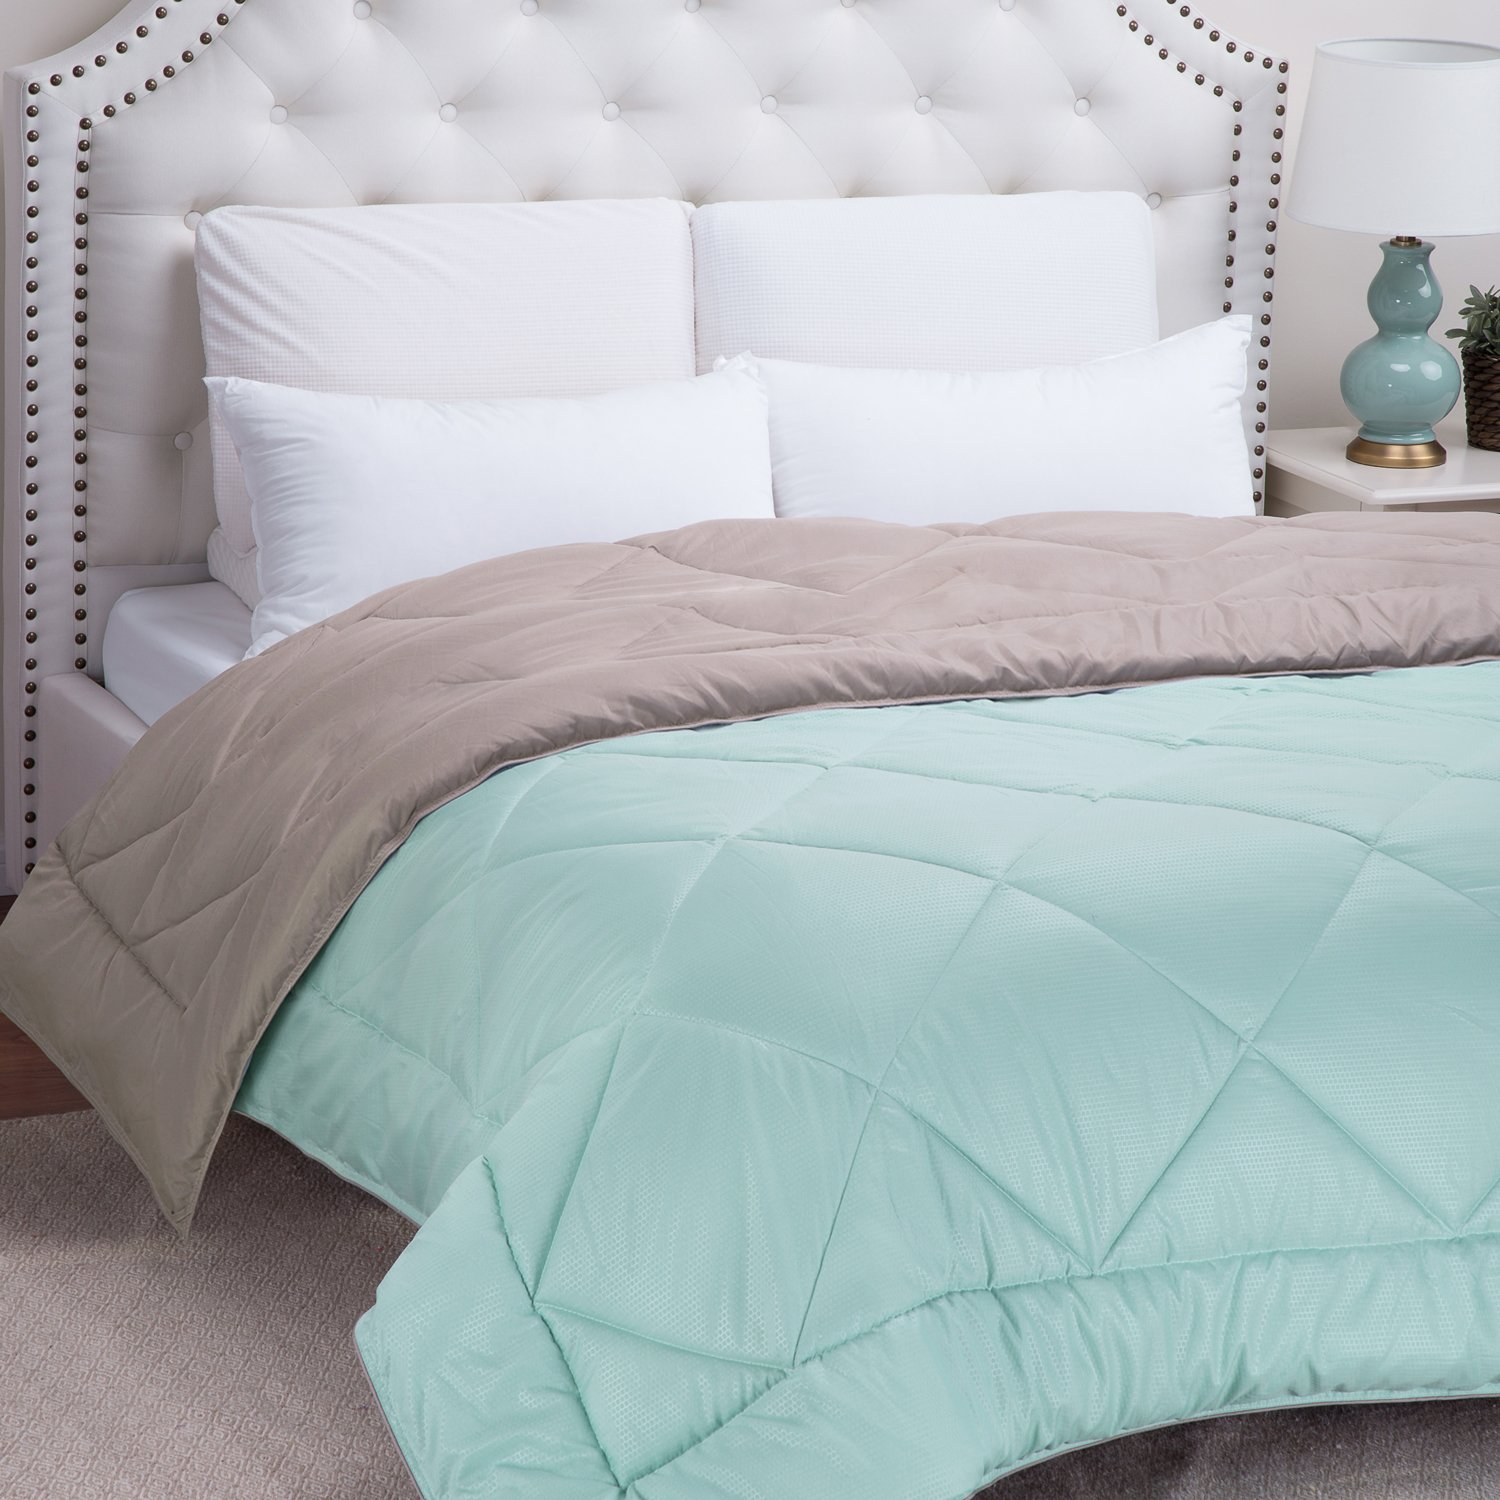 All American Collection Comforters With More Ease